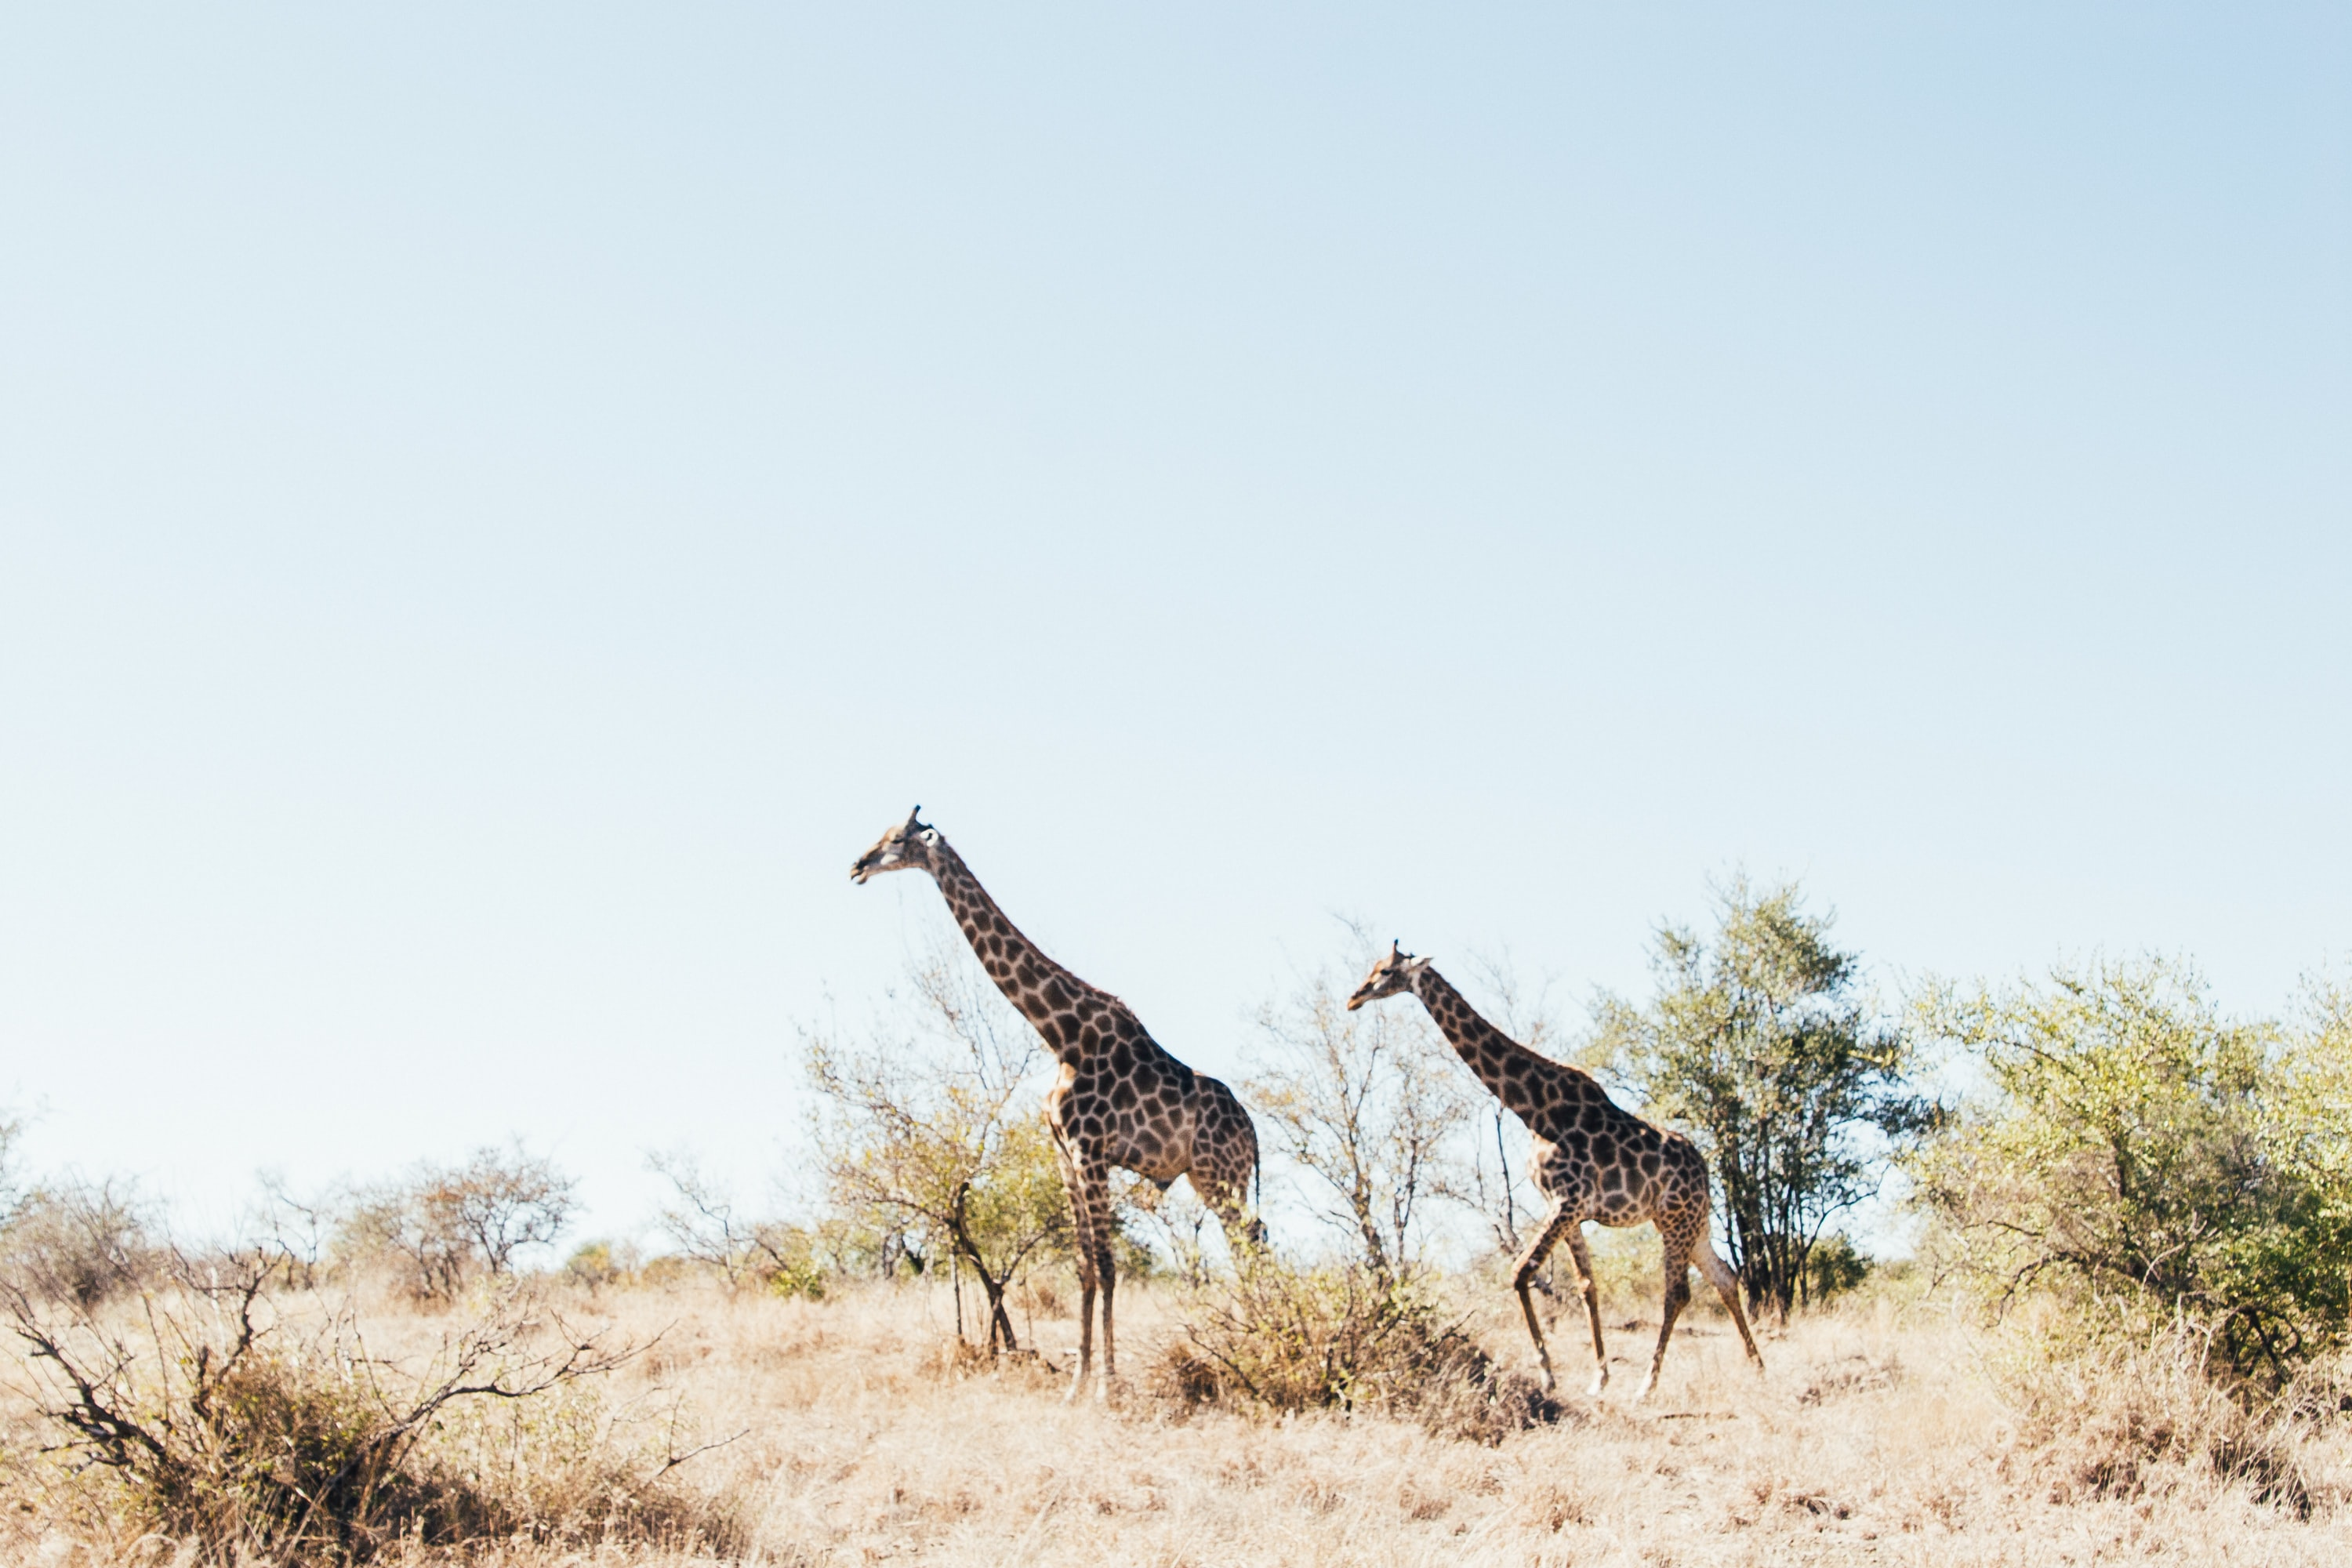 Giraffes walk through their African habitat in nature